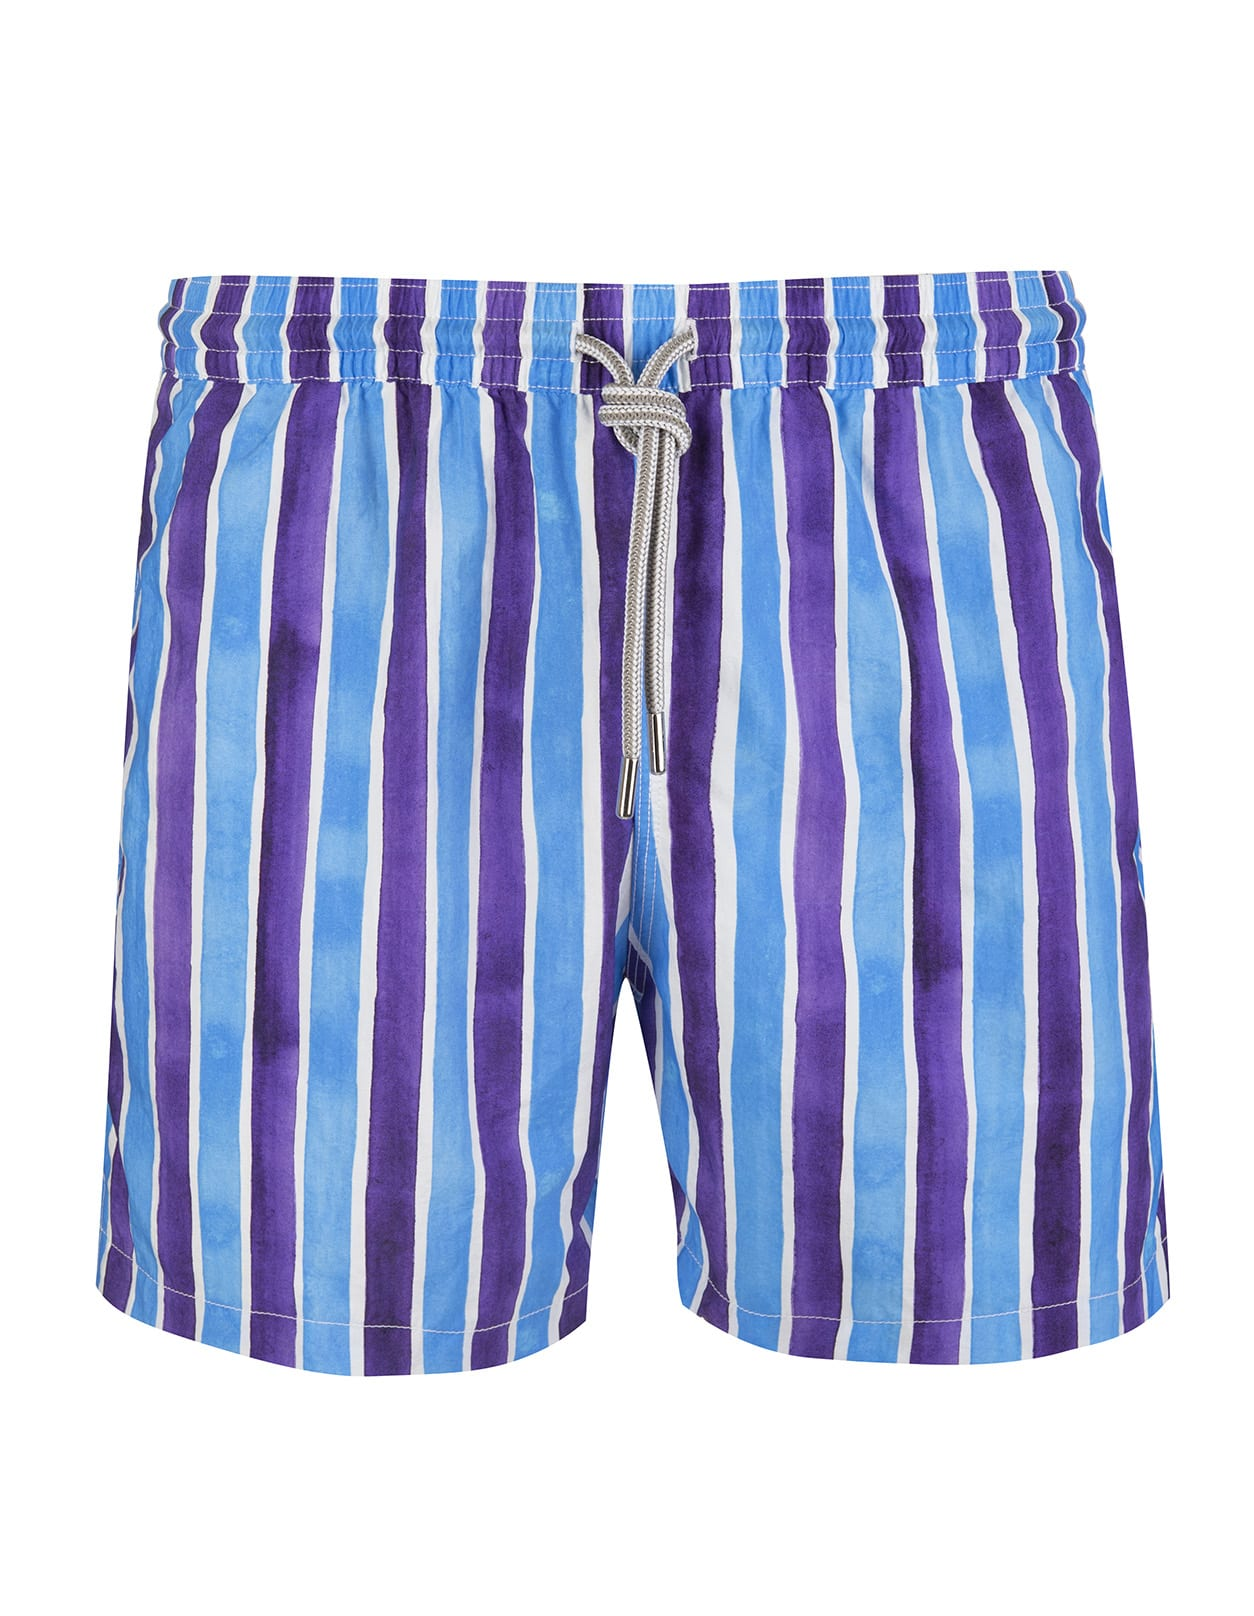 Blue And Purple Striped Swimsuit